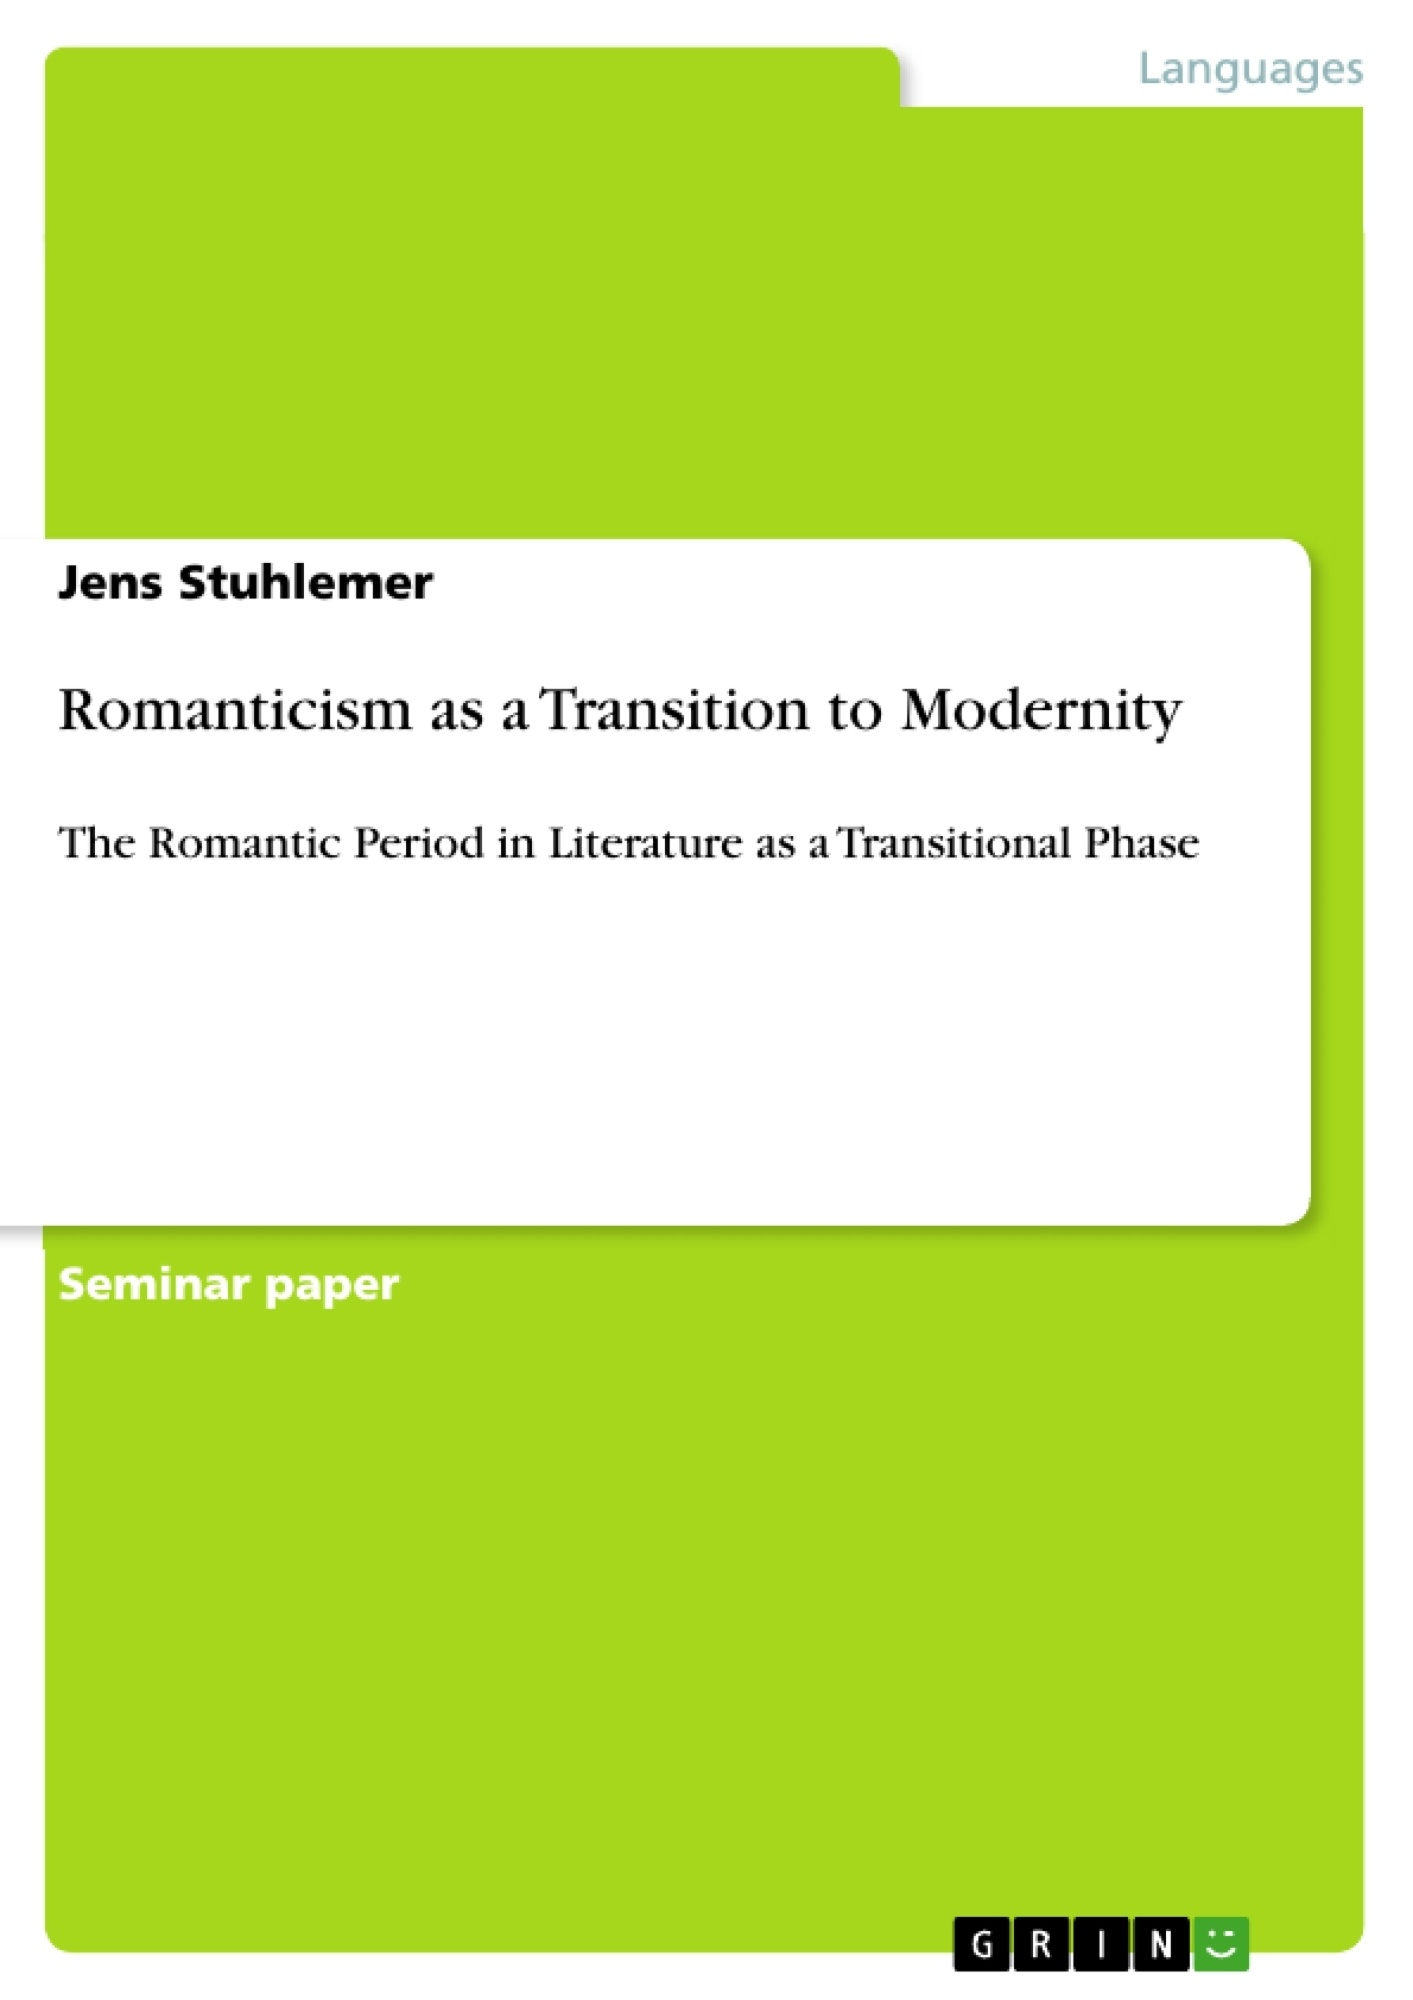 Title: Romanticism as a Transition to Modernity